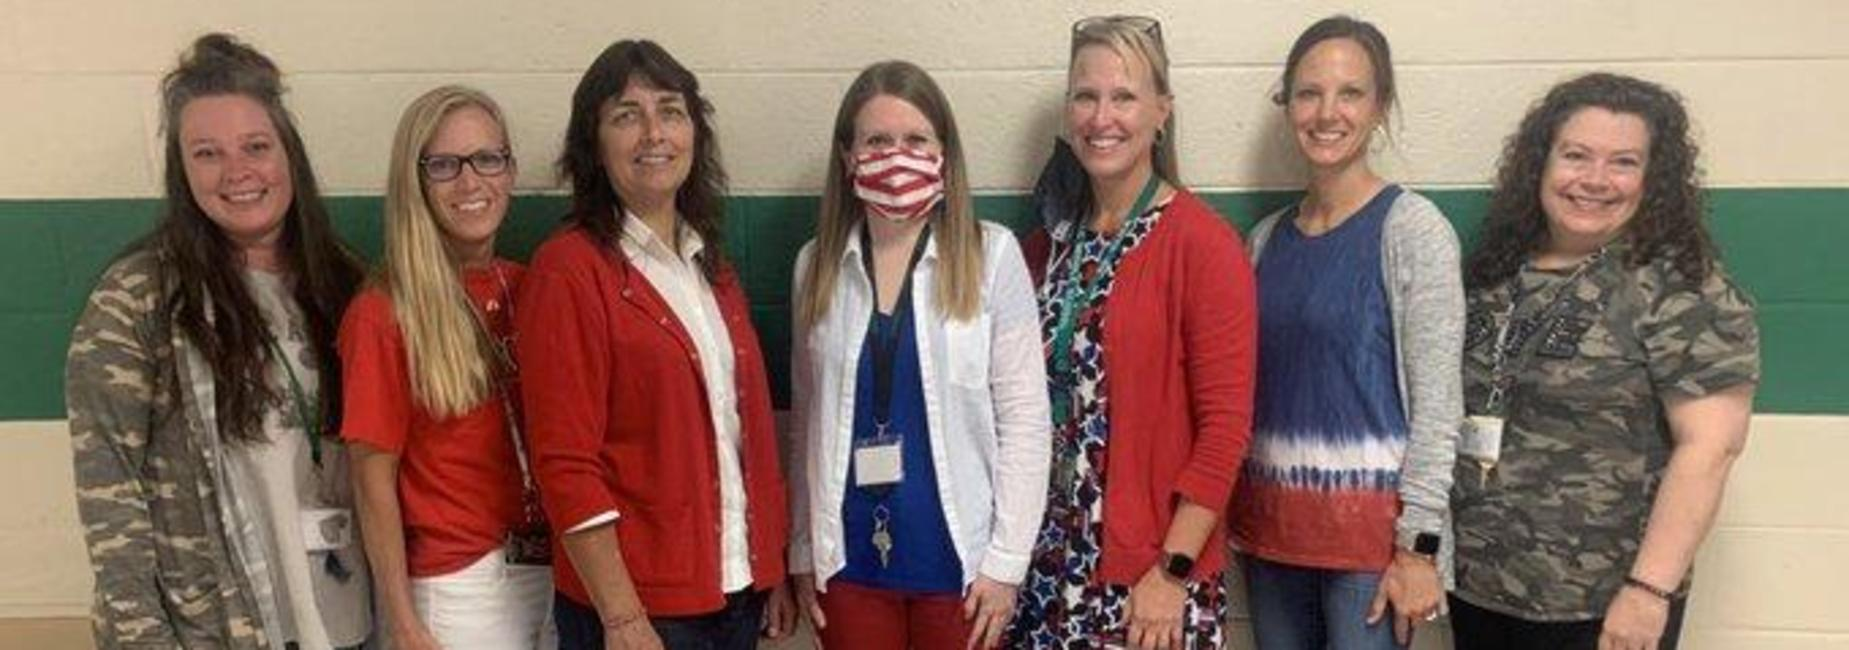 a picture of the GMS 7th grade teachers